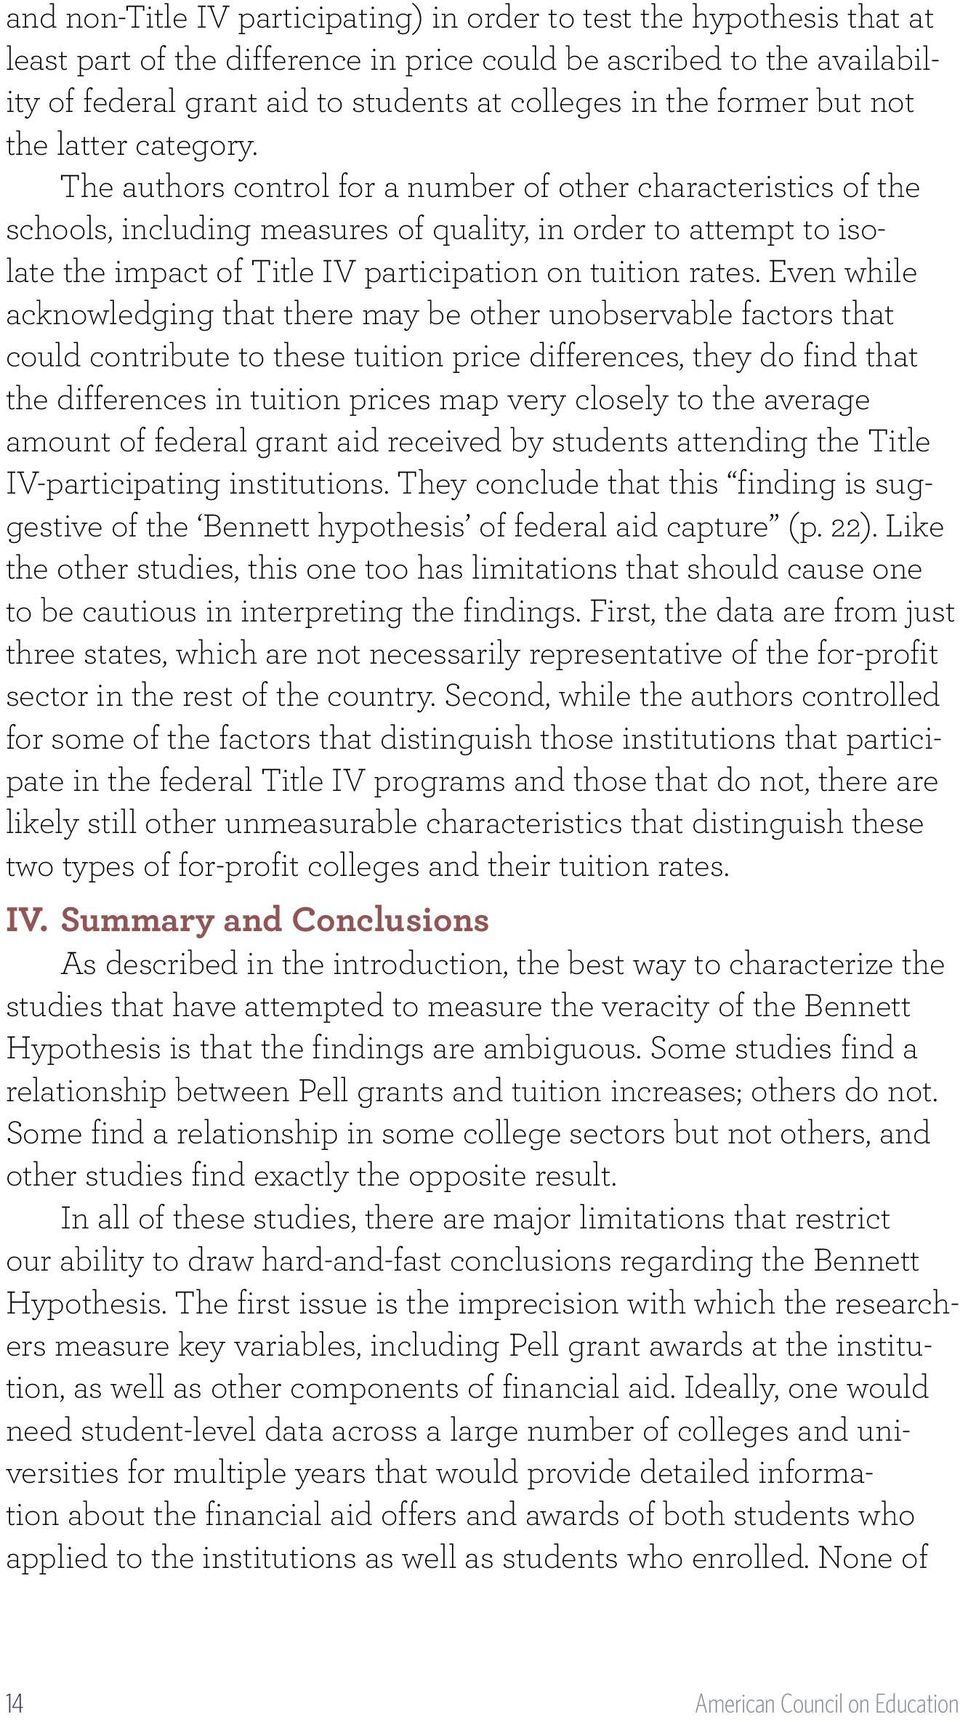 The authors control for a number of other characteristics of the schools, including measures of quality, in order to attempt to isolate the impact of Title IV participation on tuition rates.